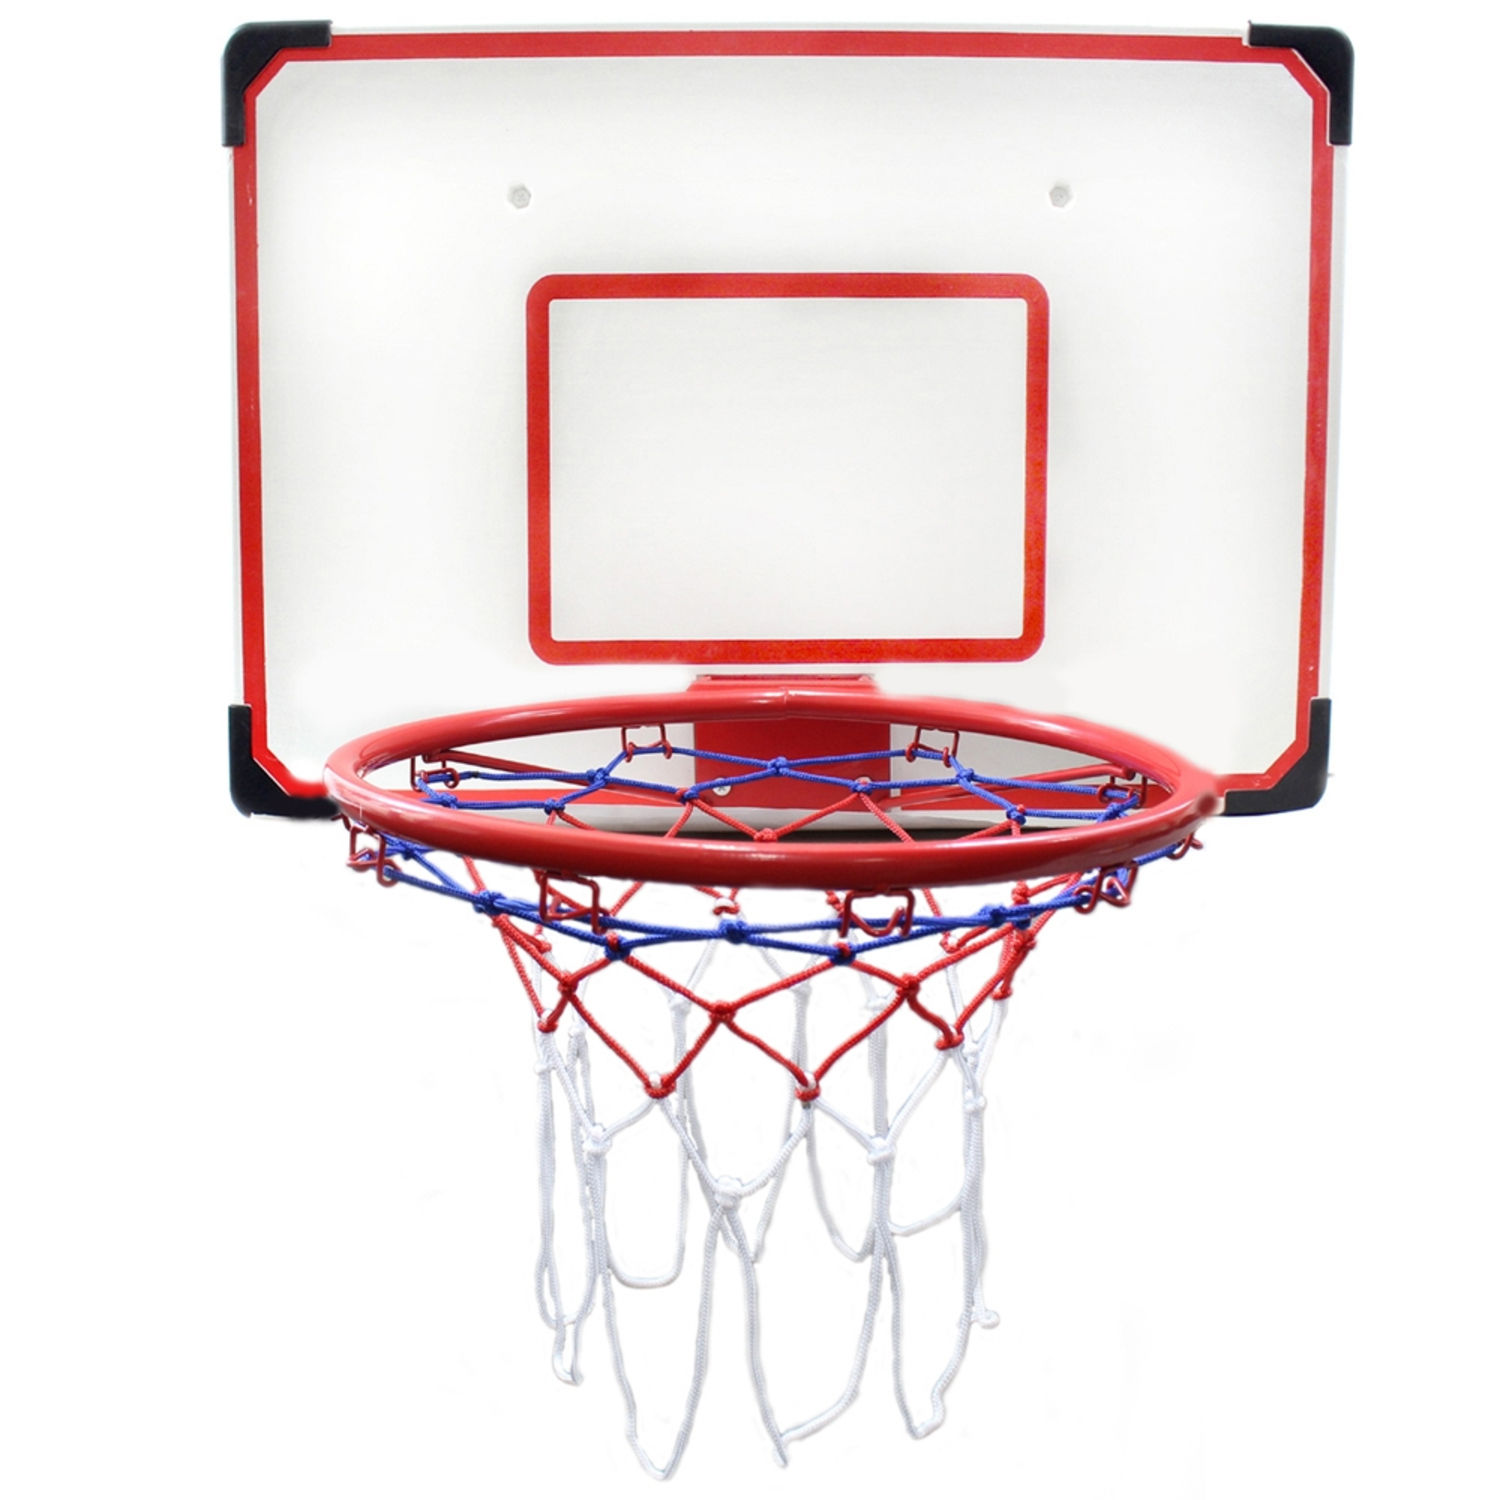 Indoor Outdoor XL Big Basketball Hoop Set Pretend Play Sports Physical Education by